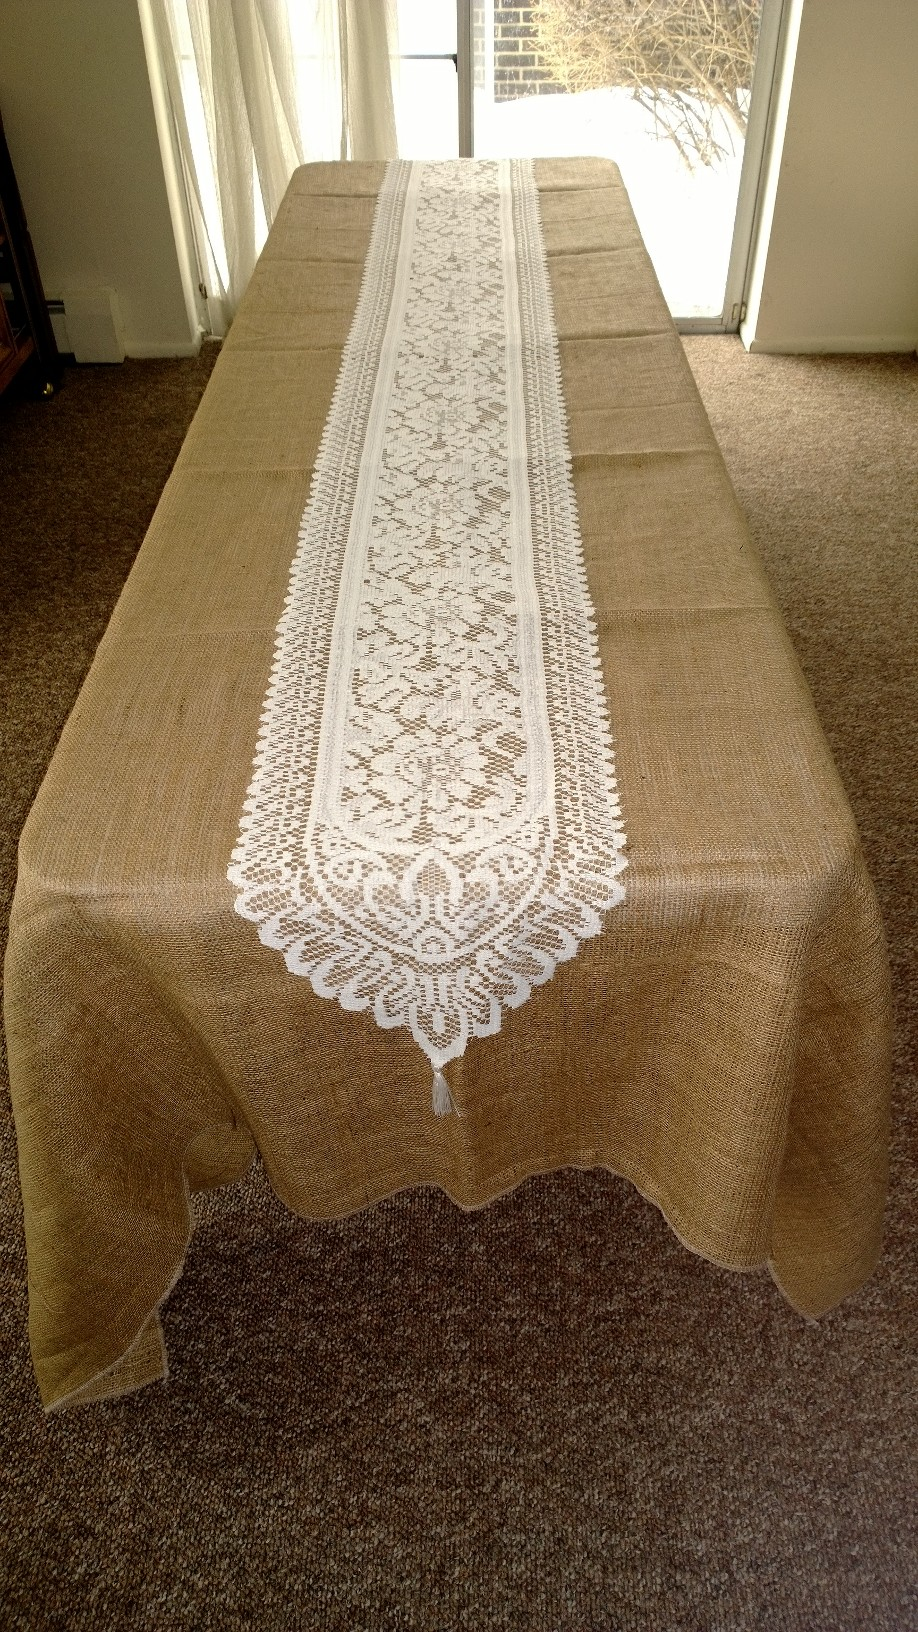 Table Lace Runners